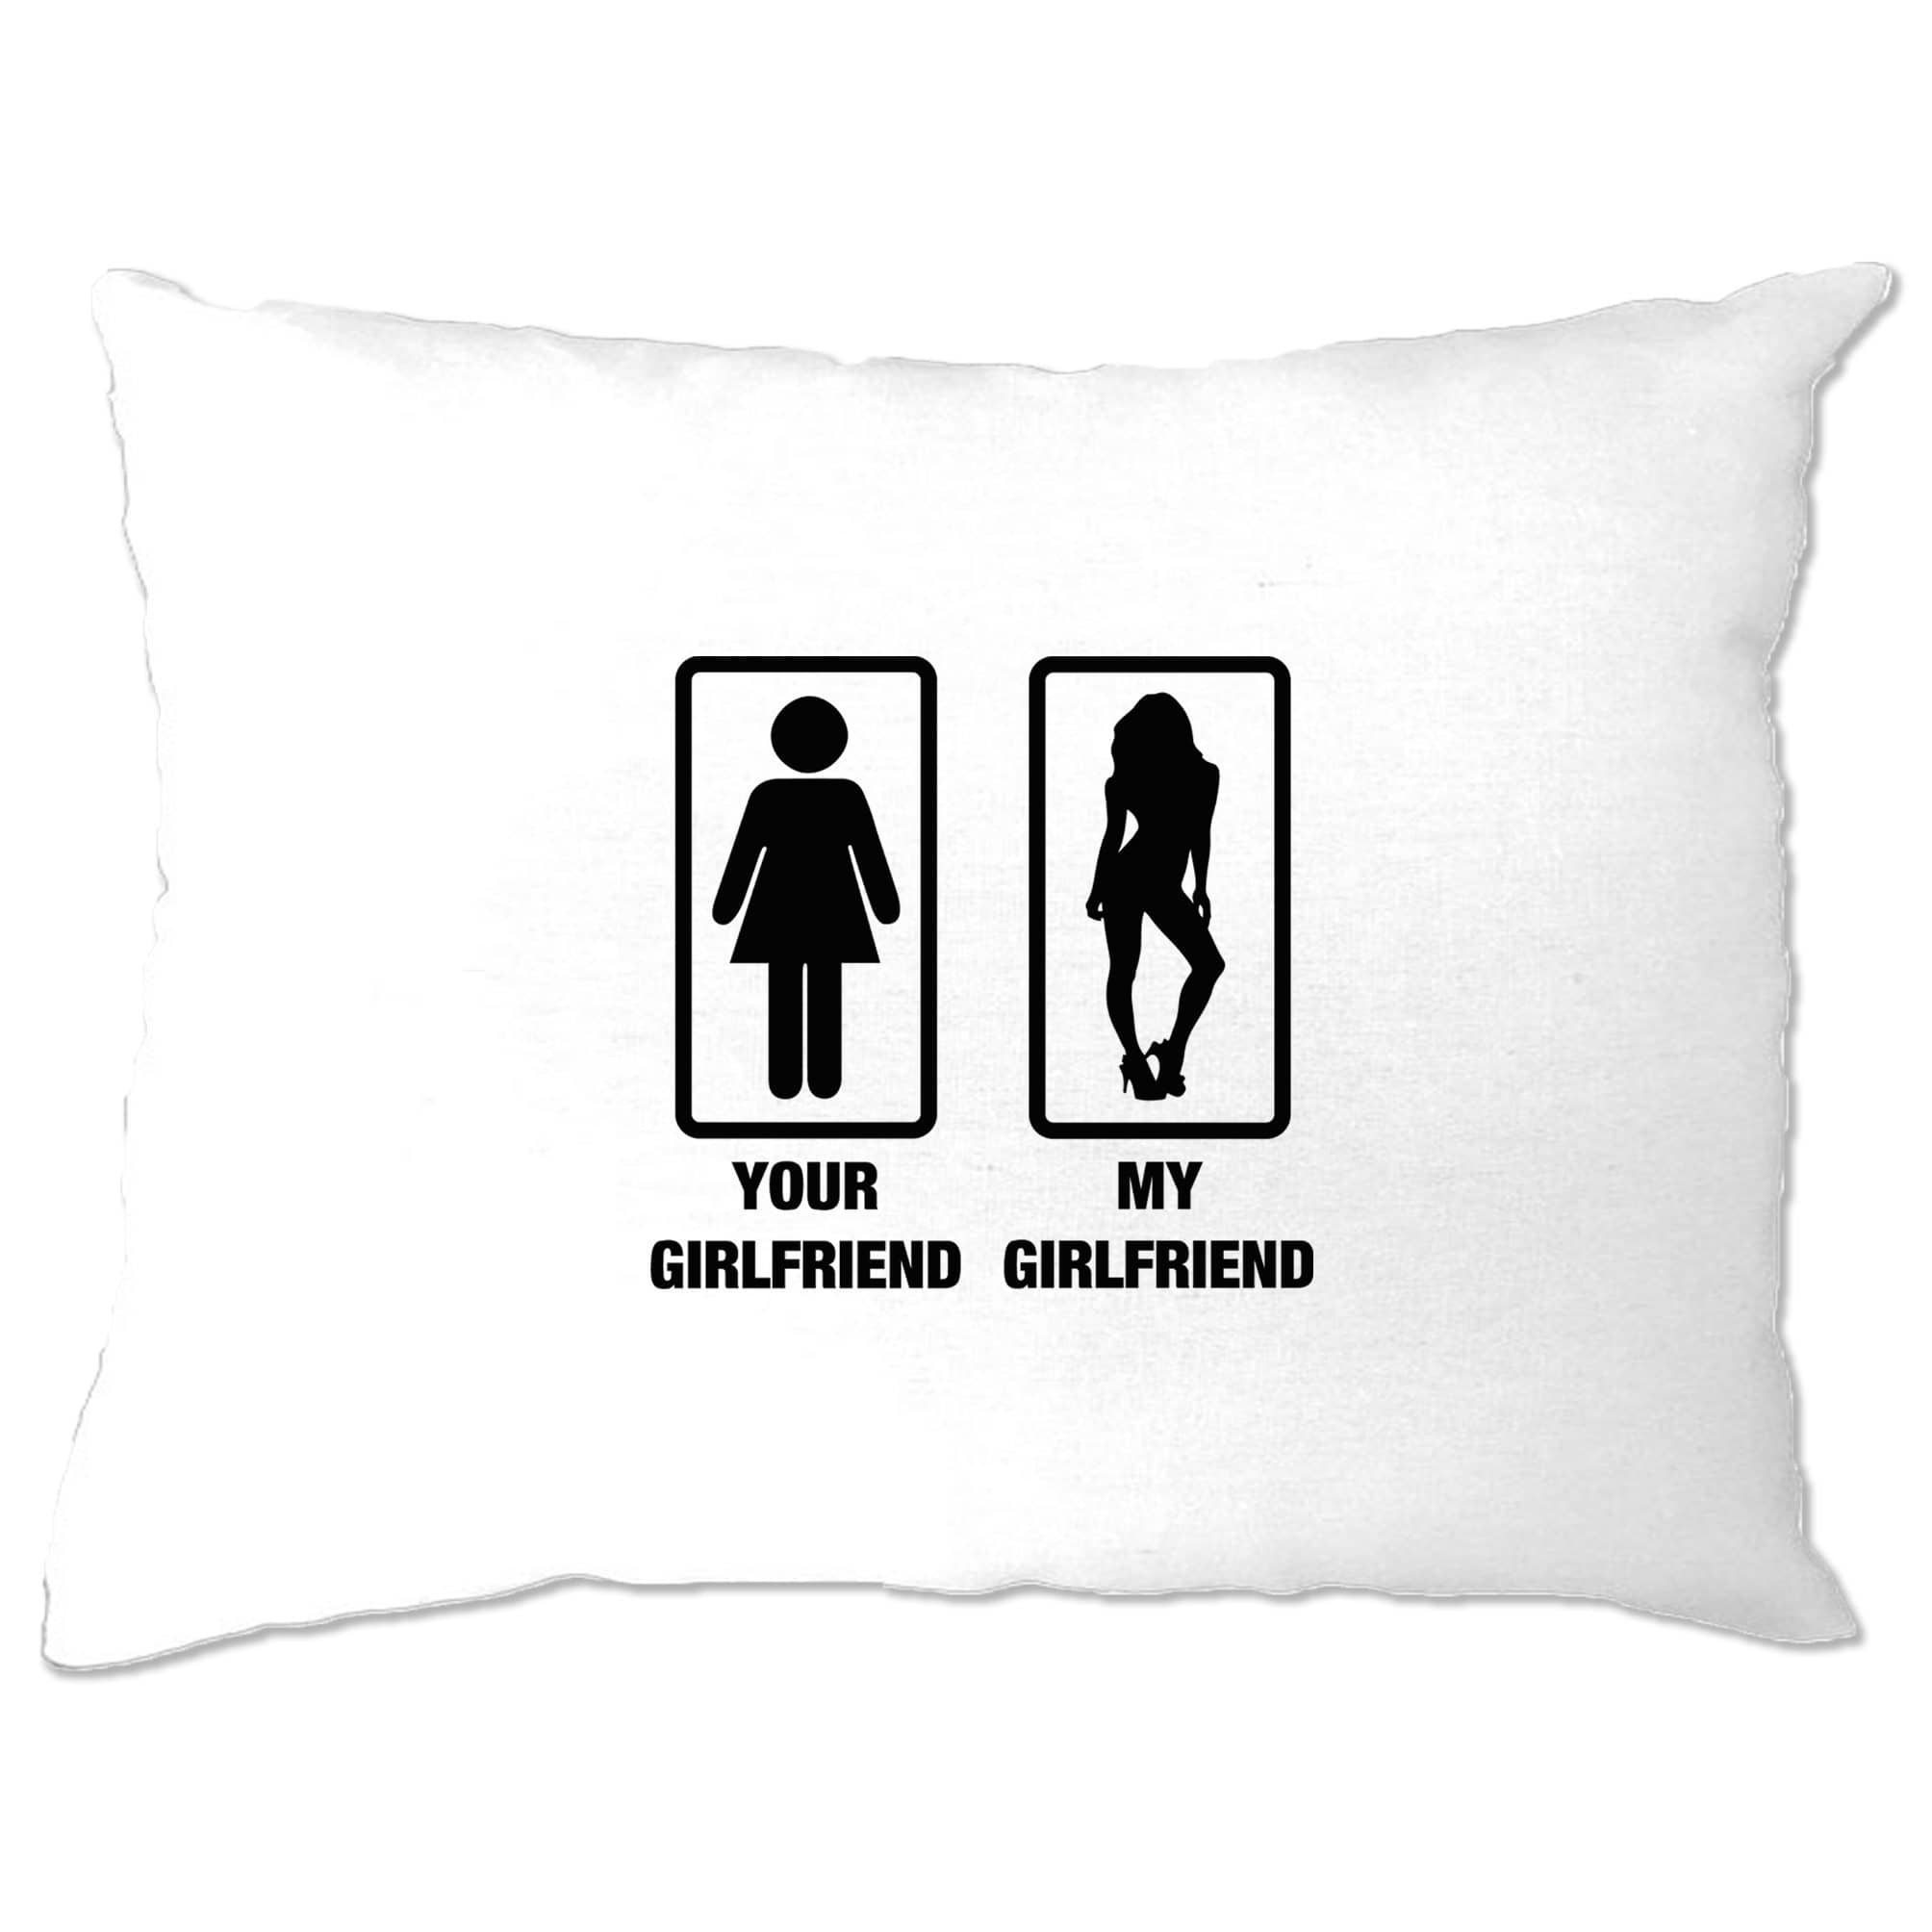 Couples Novelty Pillow Case Your Girlfriend And Mine